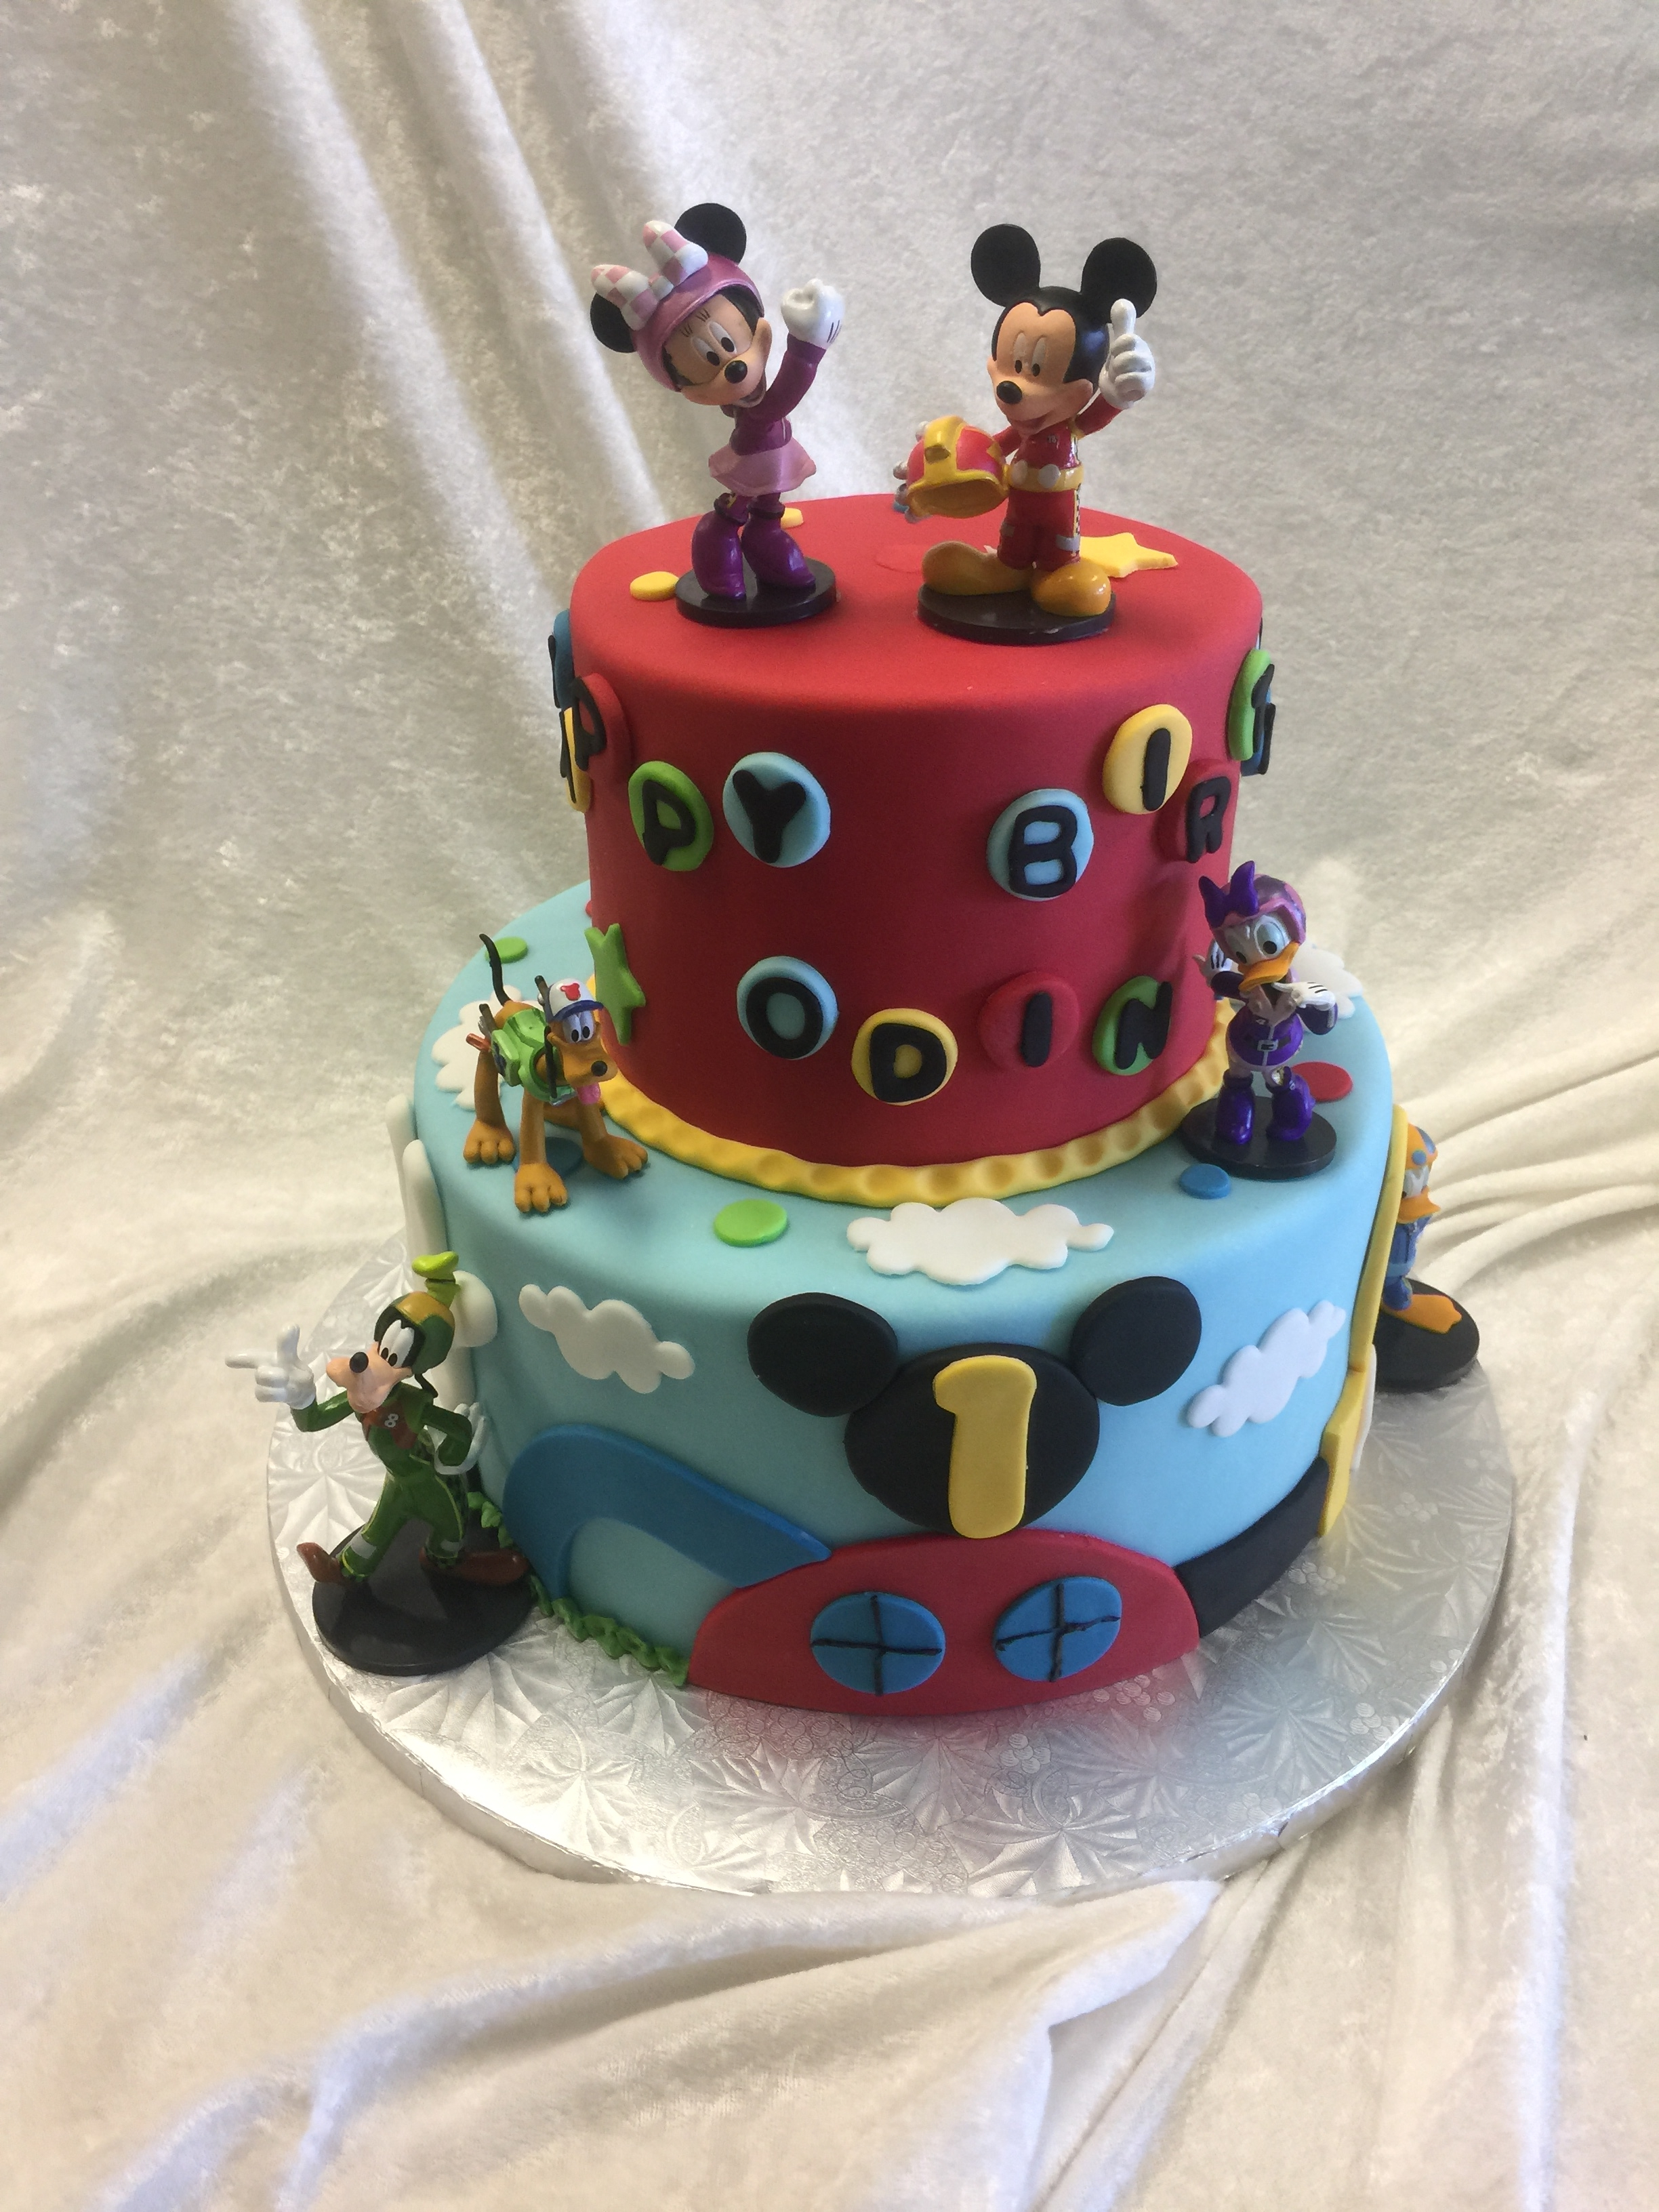 3568, first birthday, 1st birthday, mickey mouse, mickey's playhouse, minnie mouse, minnie, donald duck, goofy, daisy duck, blue, red, black, ears, disney, tiered